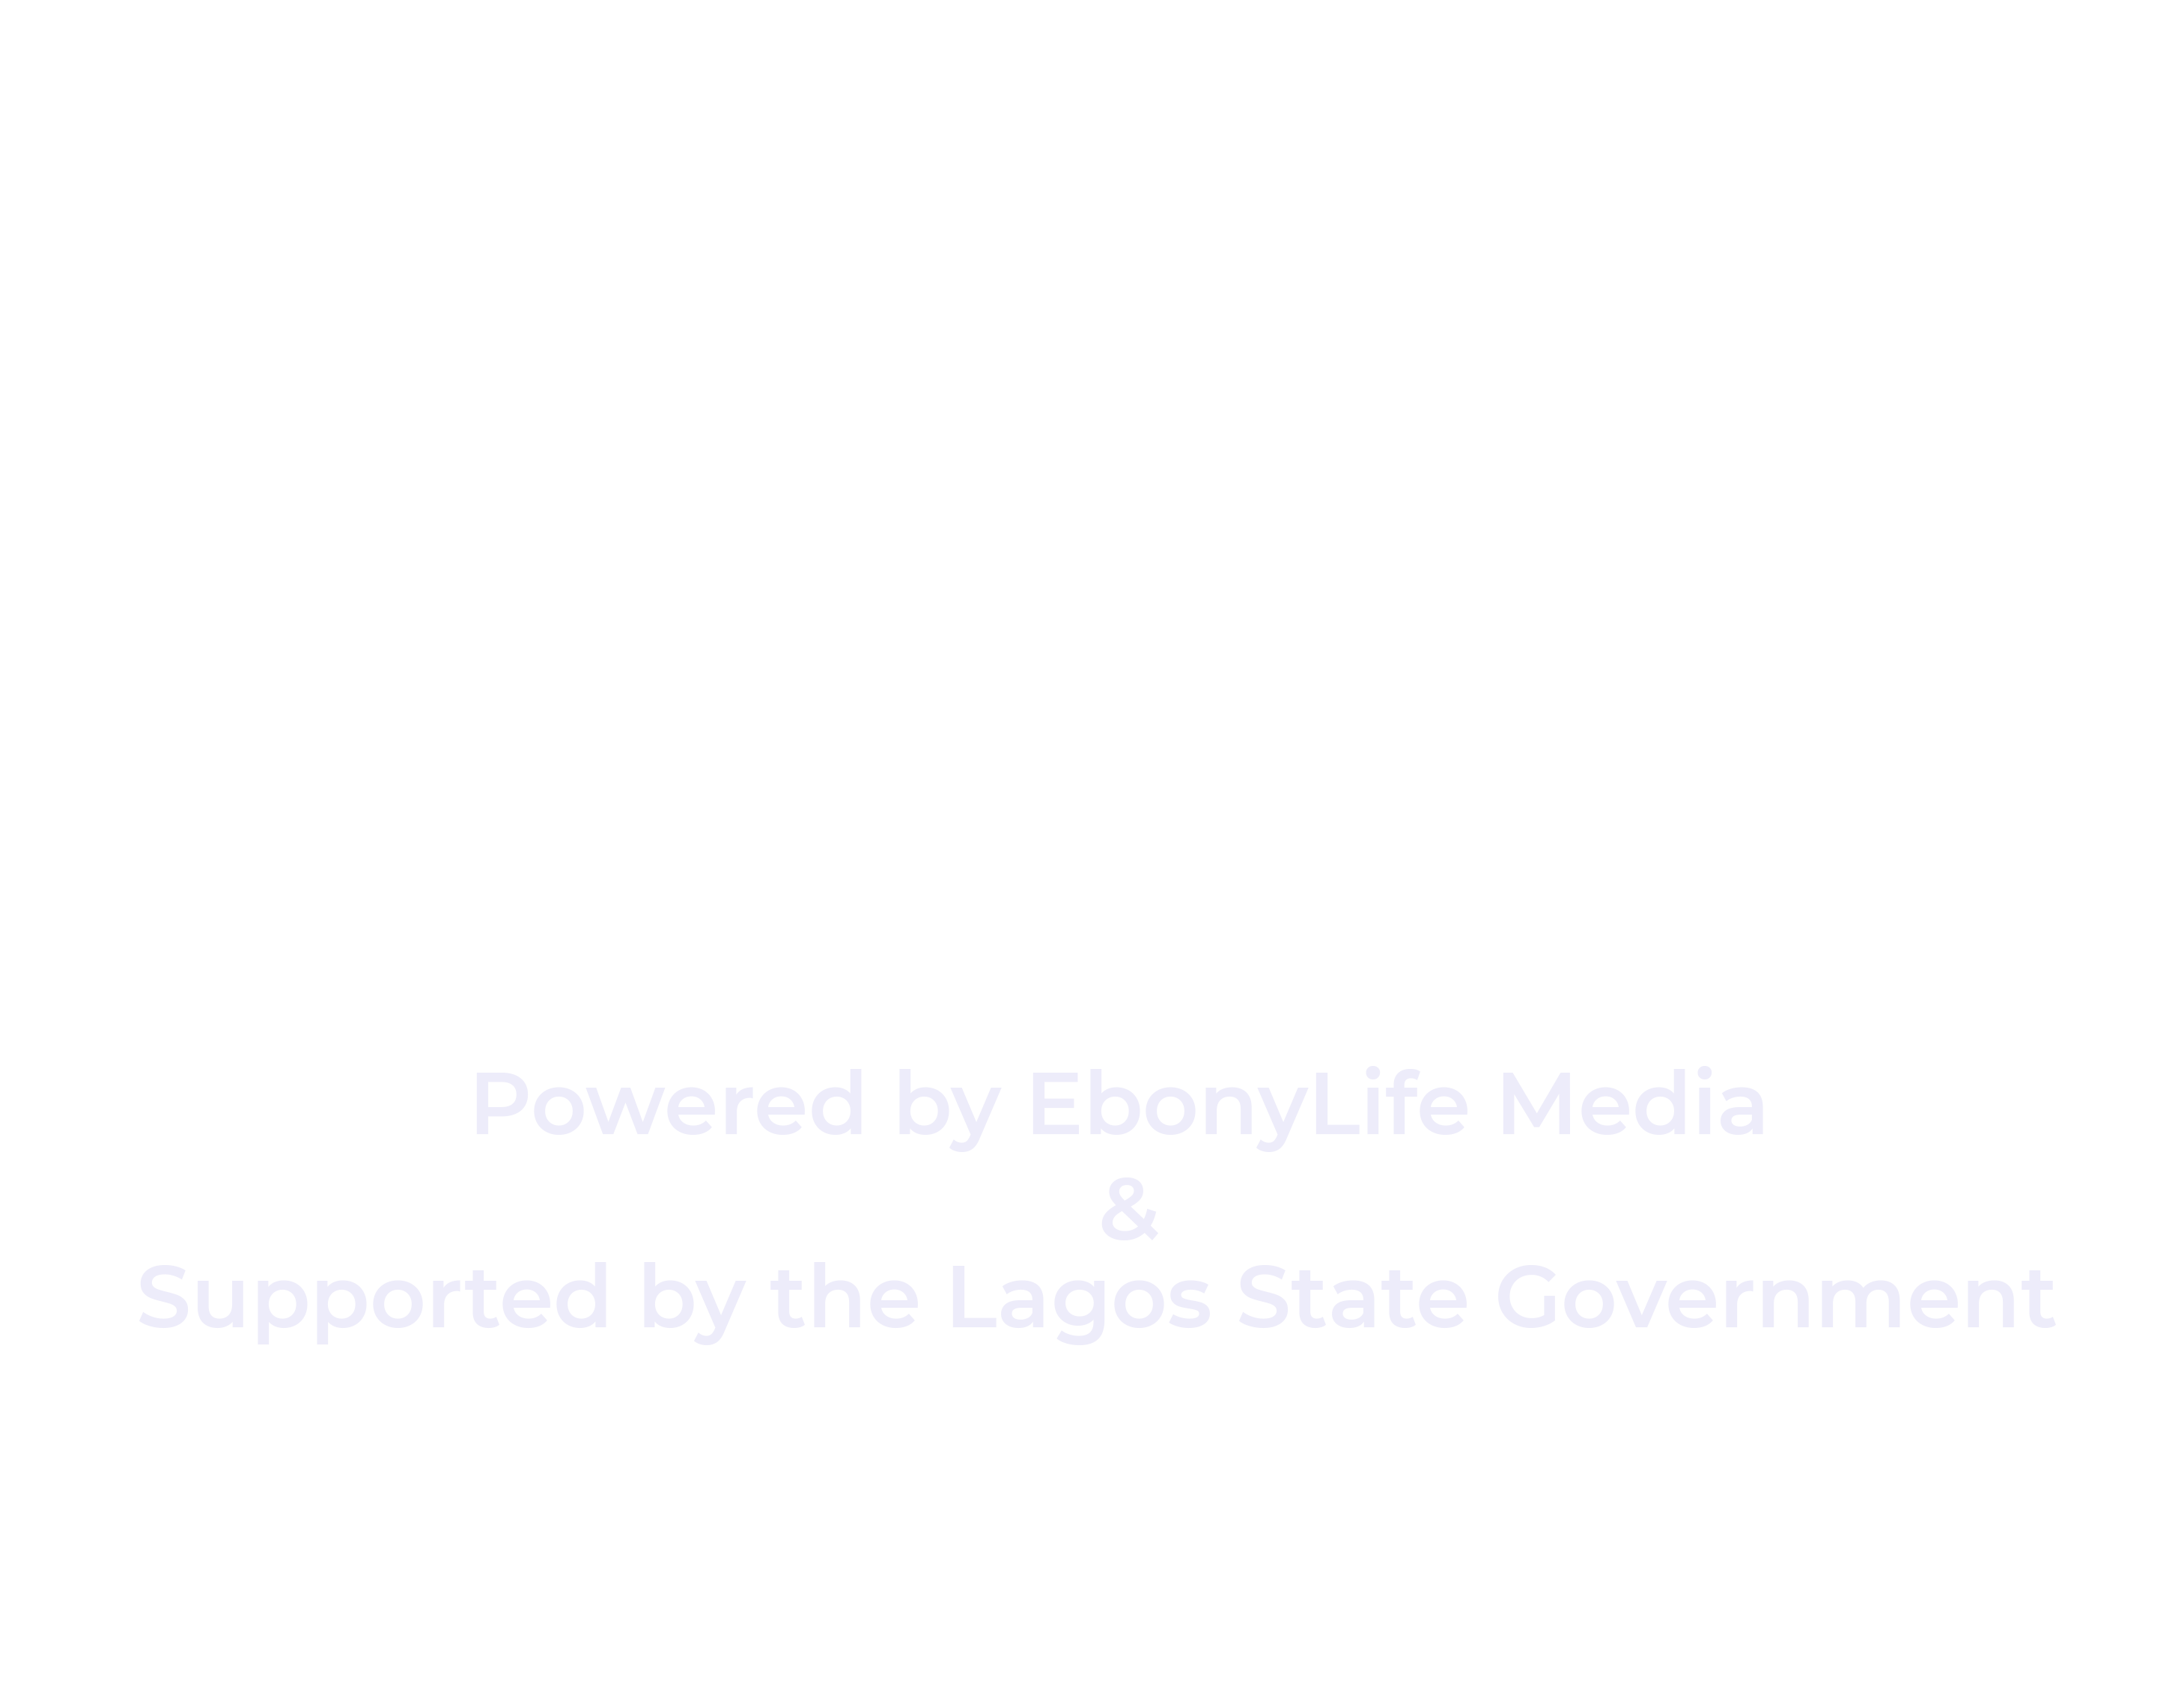 The Lagos Creative Academy